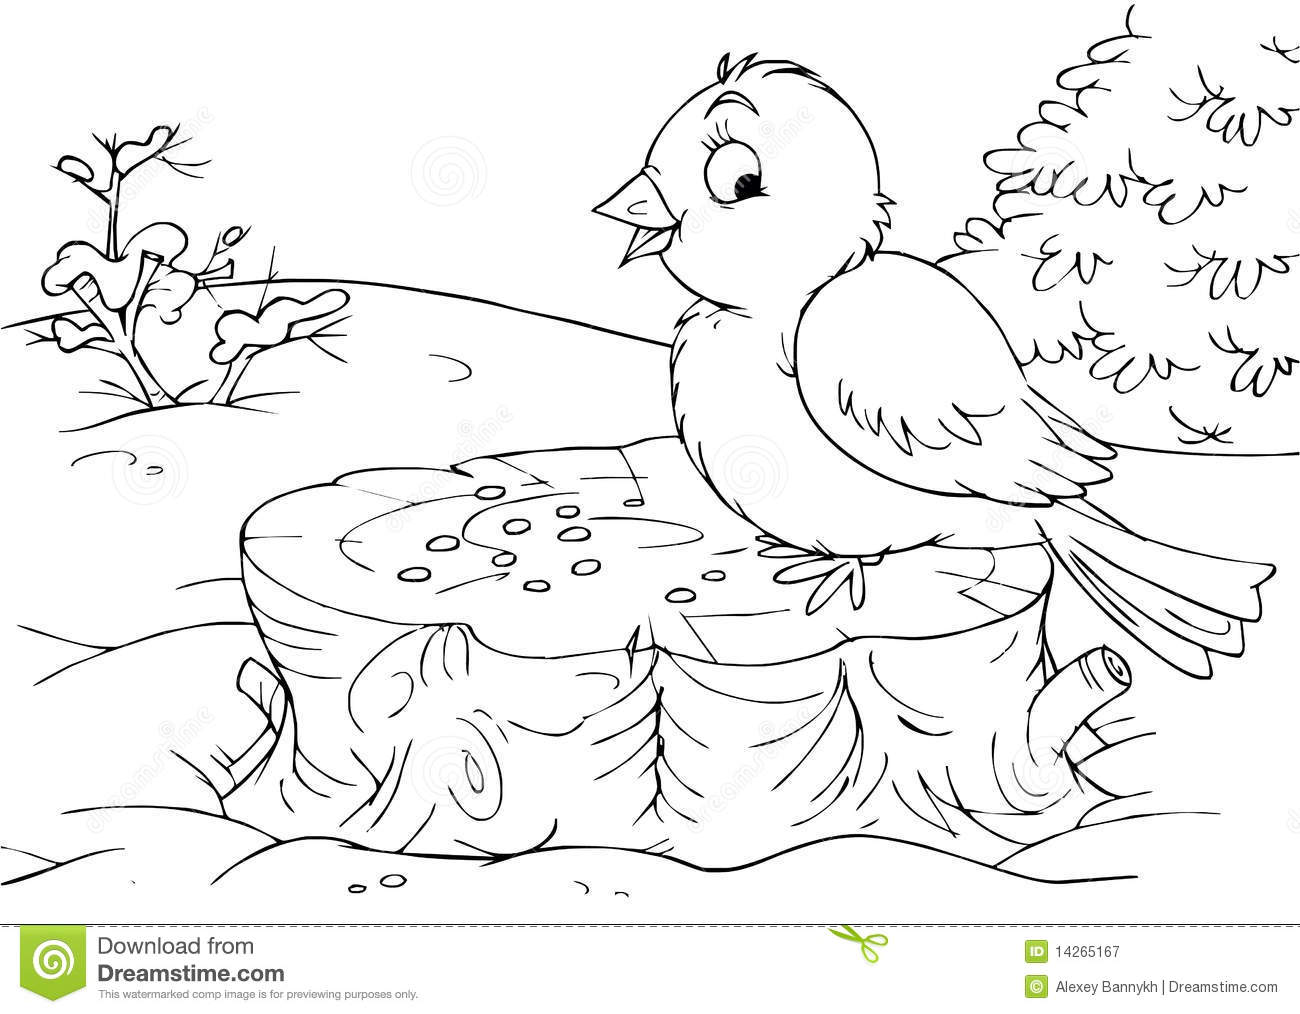 Bird sitting on a stump stock illustration. Illustration